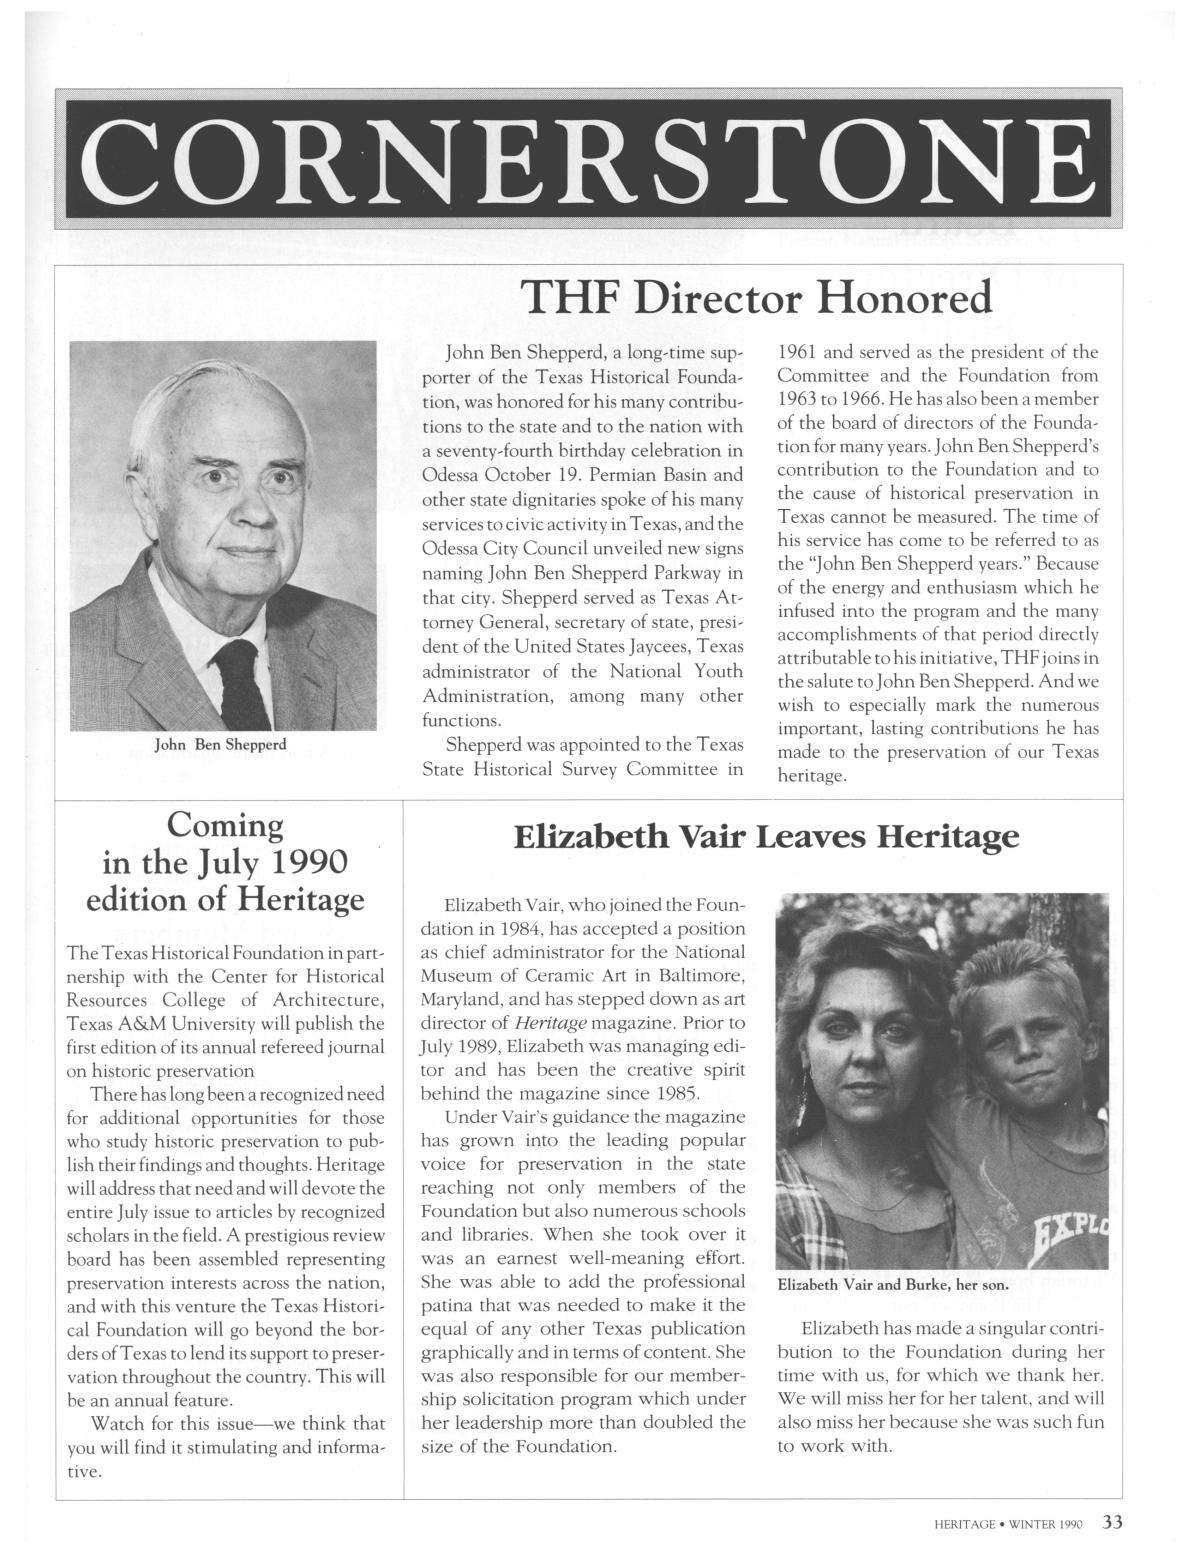 Heritage, Volume 8, Number 1, Winter 1990                                                                                                      33